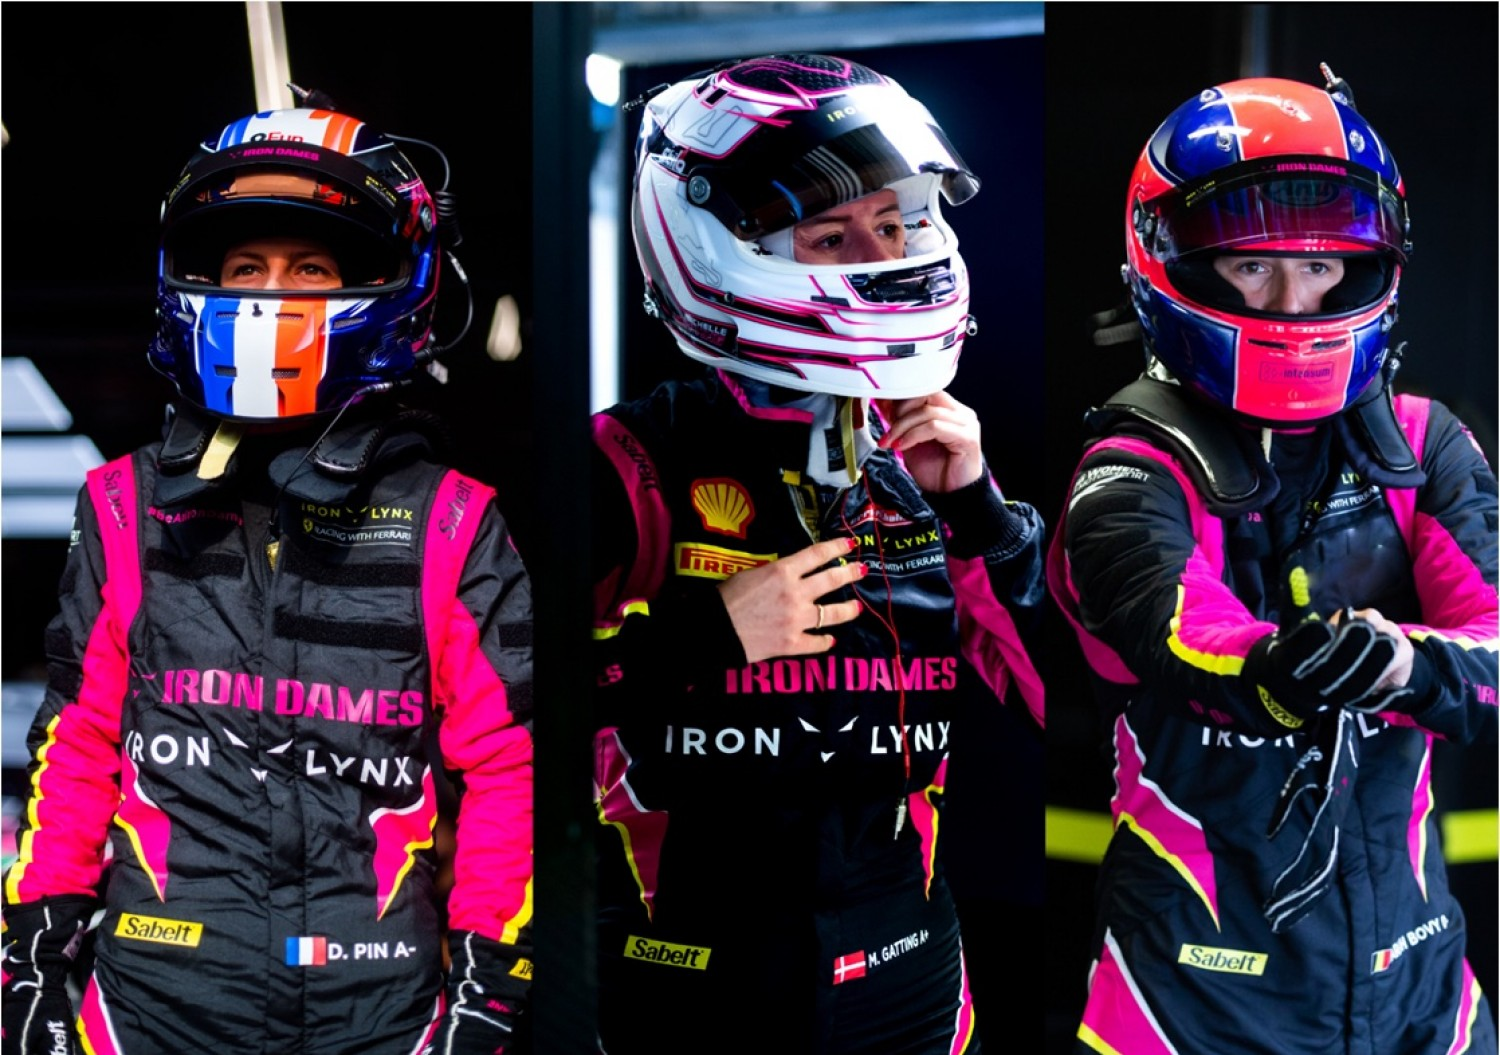 Iron Dames joins Fanatec GT World Challenge Europe Powered by AWS finale in Barcelona